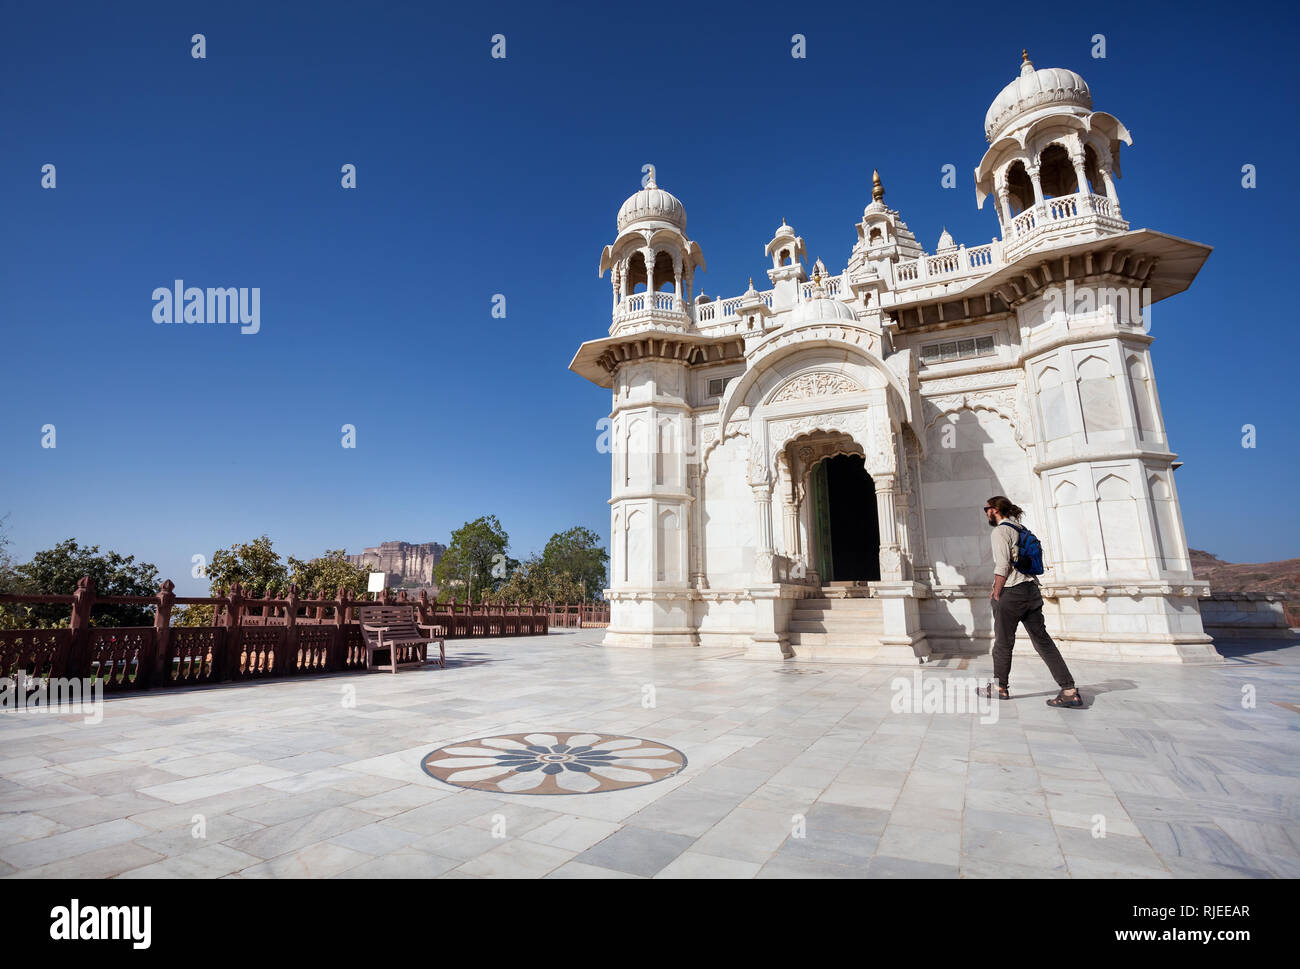 JODHPUR, RAJASTHAN, INDIA - MARCH 09, 2015: Foreign tourist walking near Royal Cenotaph memorial from white marble – one of the famous place in Jodhpu - Stock Image